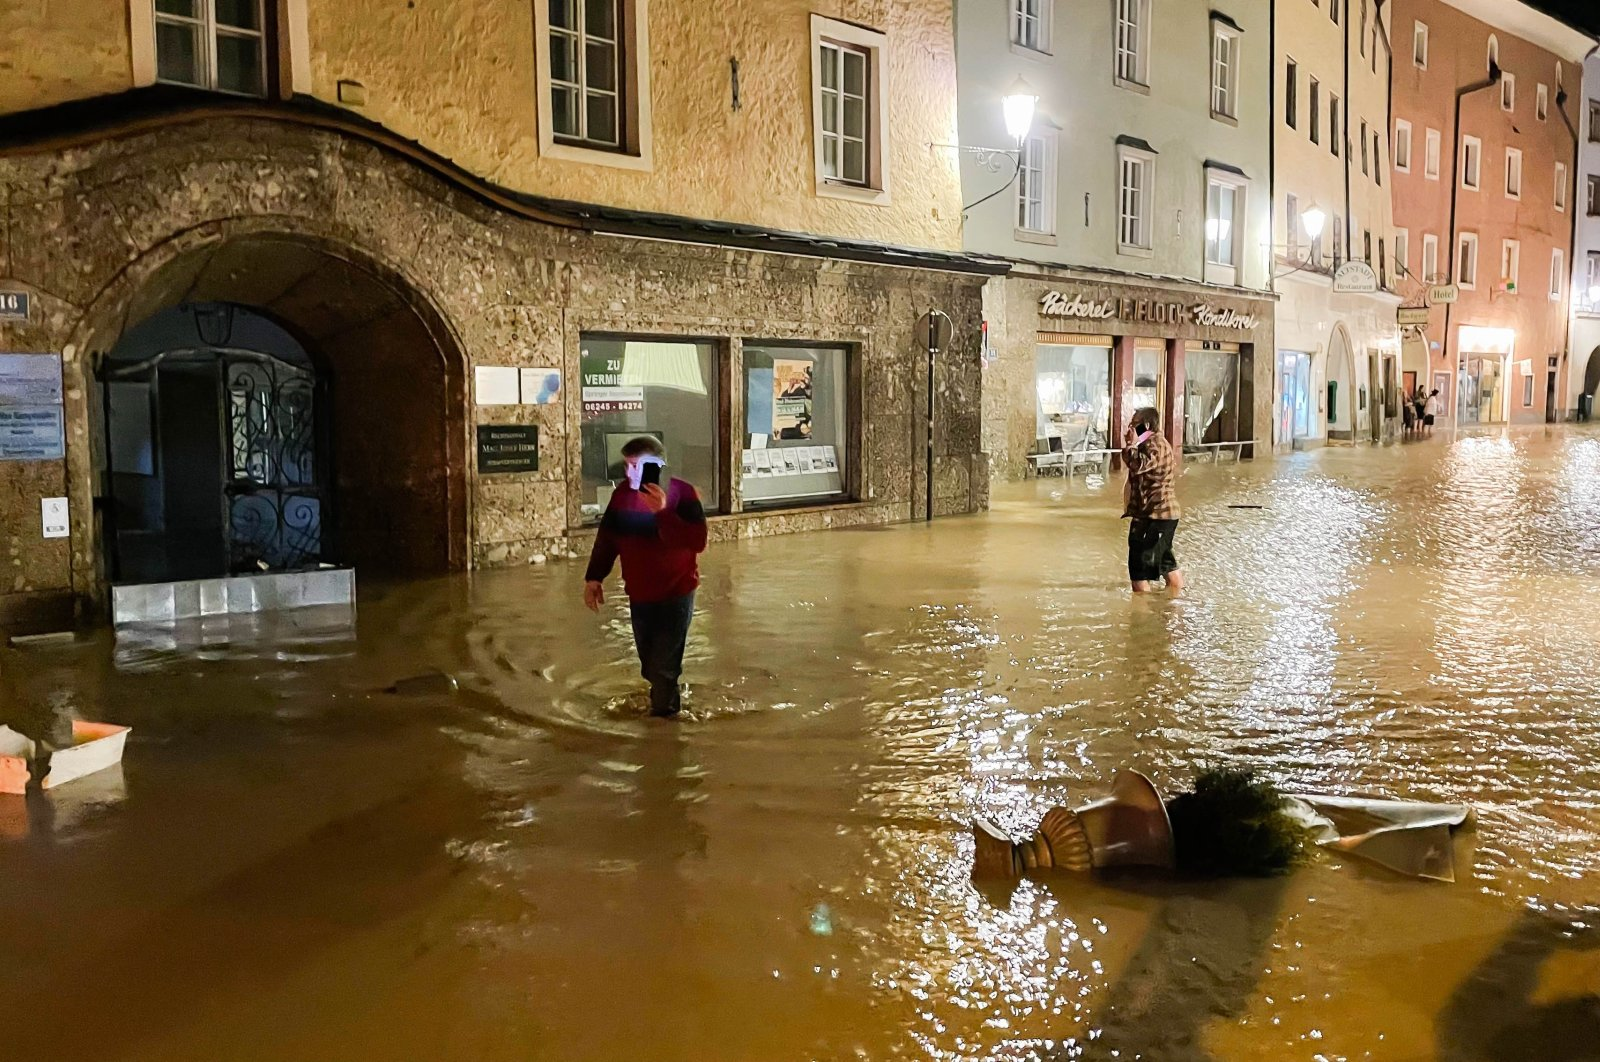 People walk in the flooded historic center, in Hallein, Austria, July 17, 2021. (AFP PHOTO)